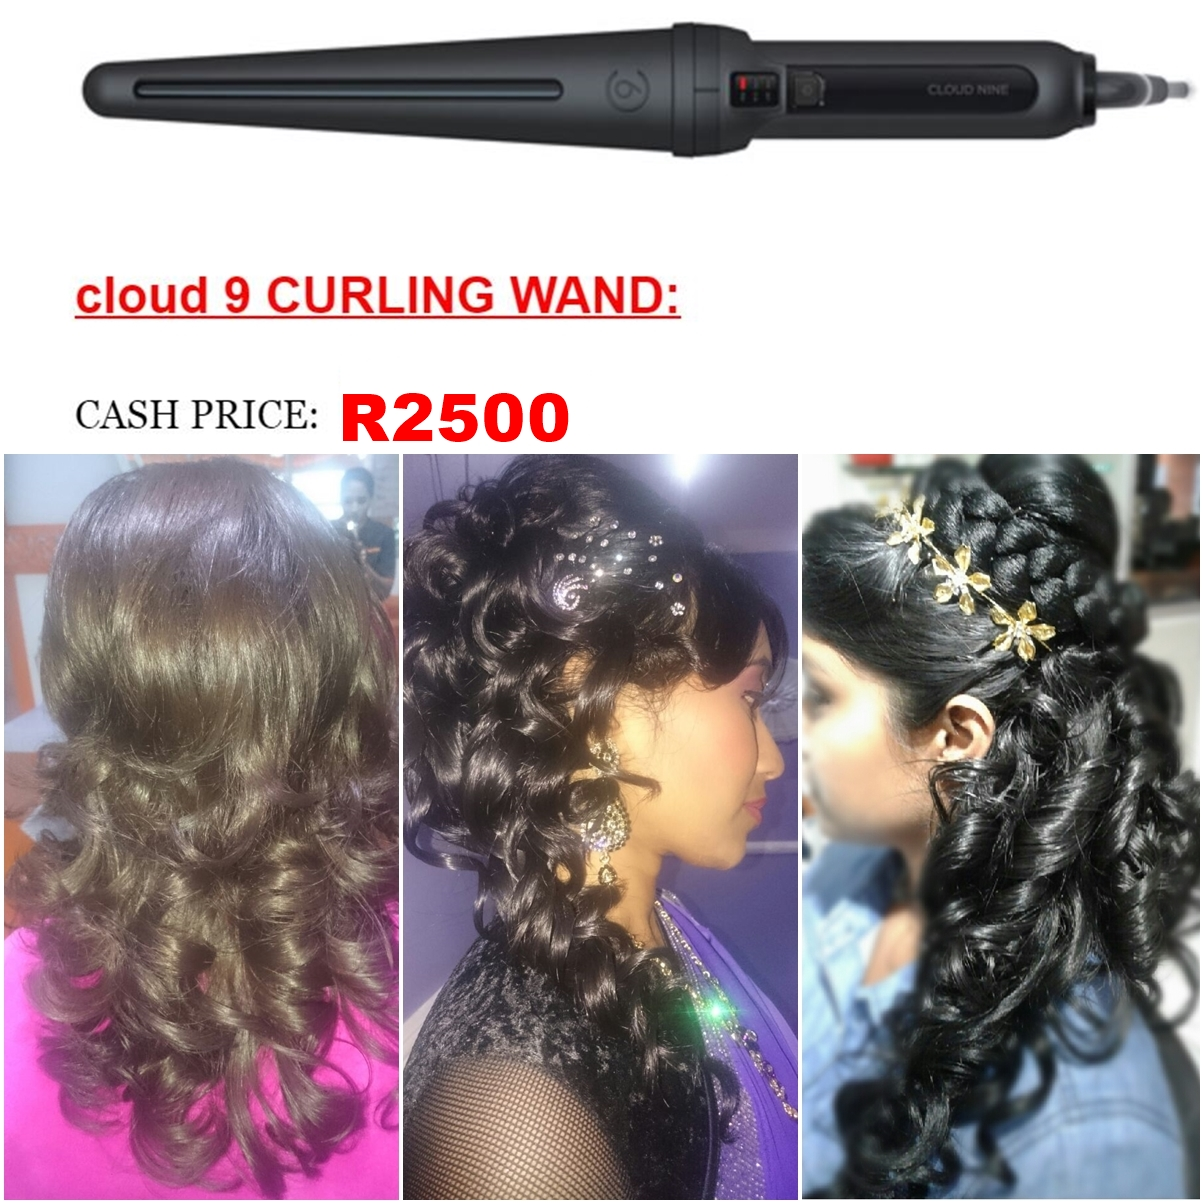 SALON CLEO FOR CLOUDNINE CURLING WAND..DO OR MAKE CURLS EFFORTLESSLY AT SALON CLEO 0315009998